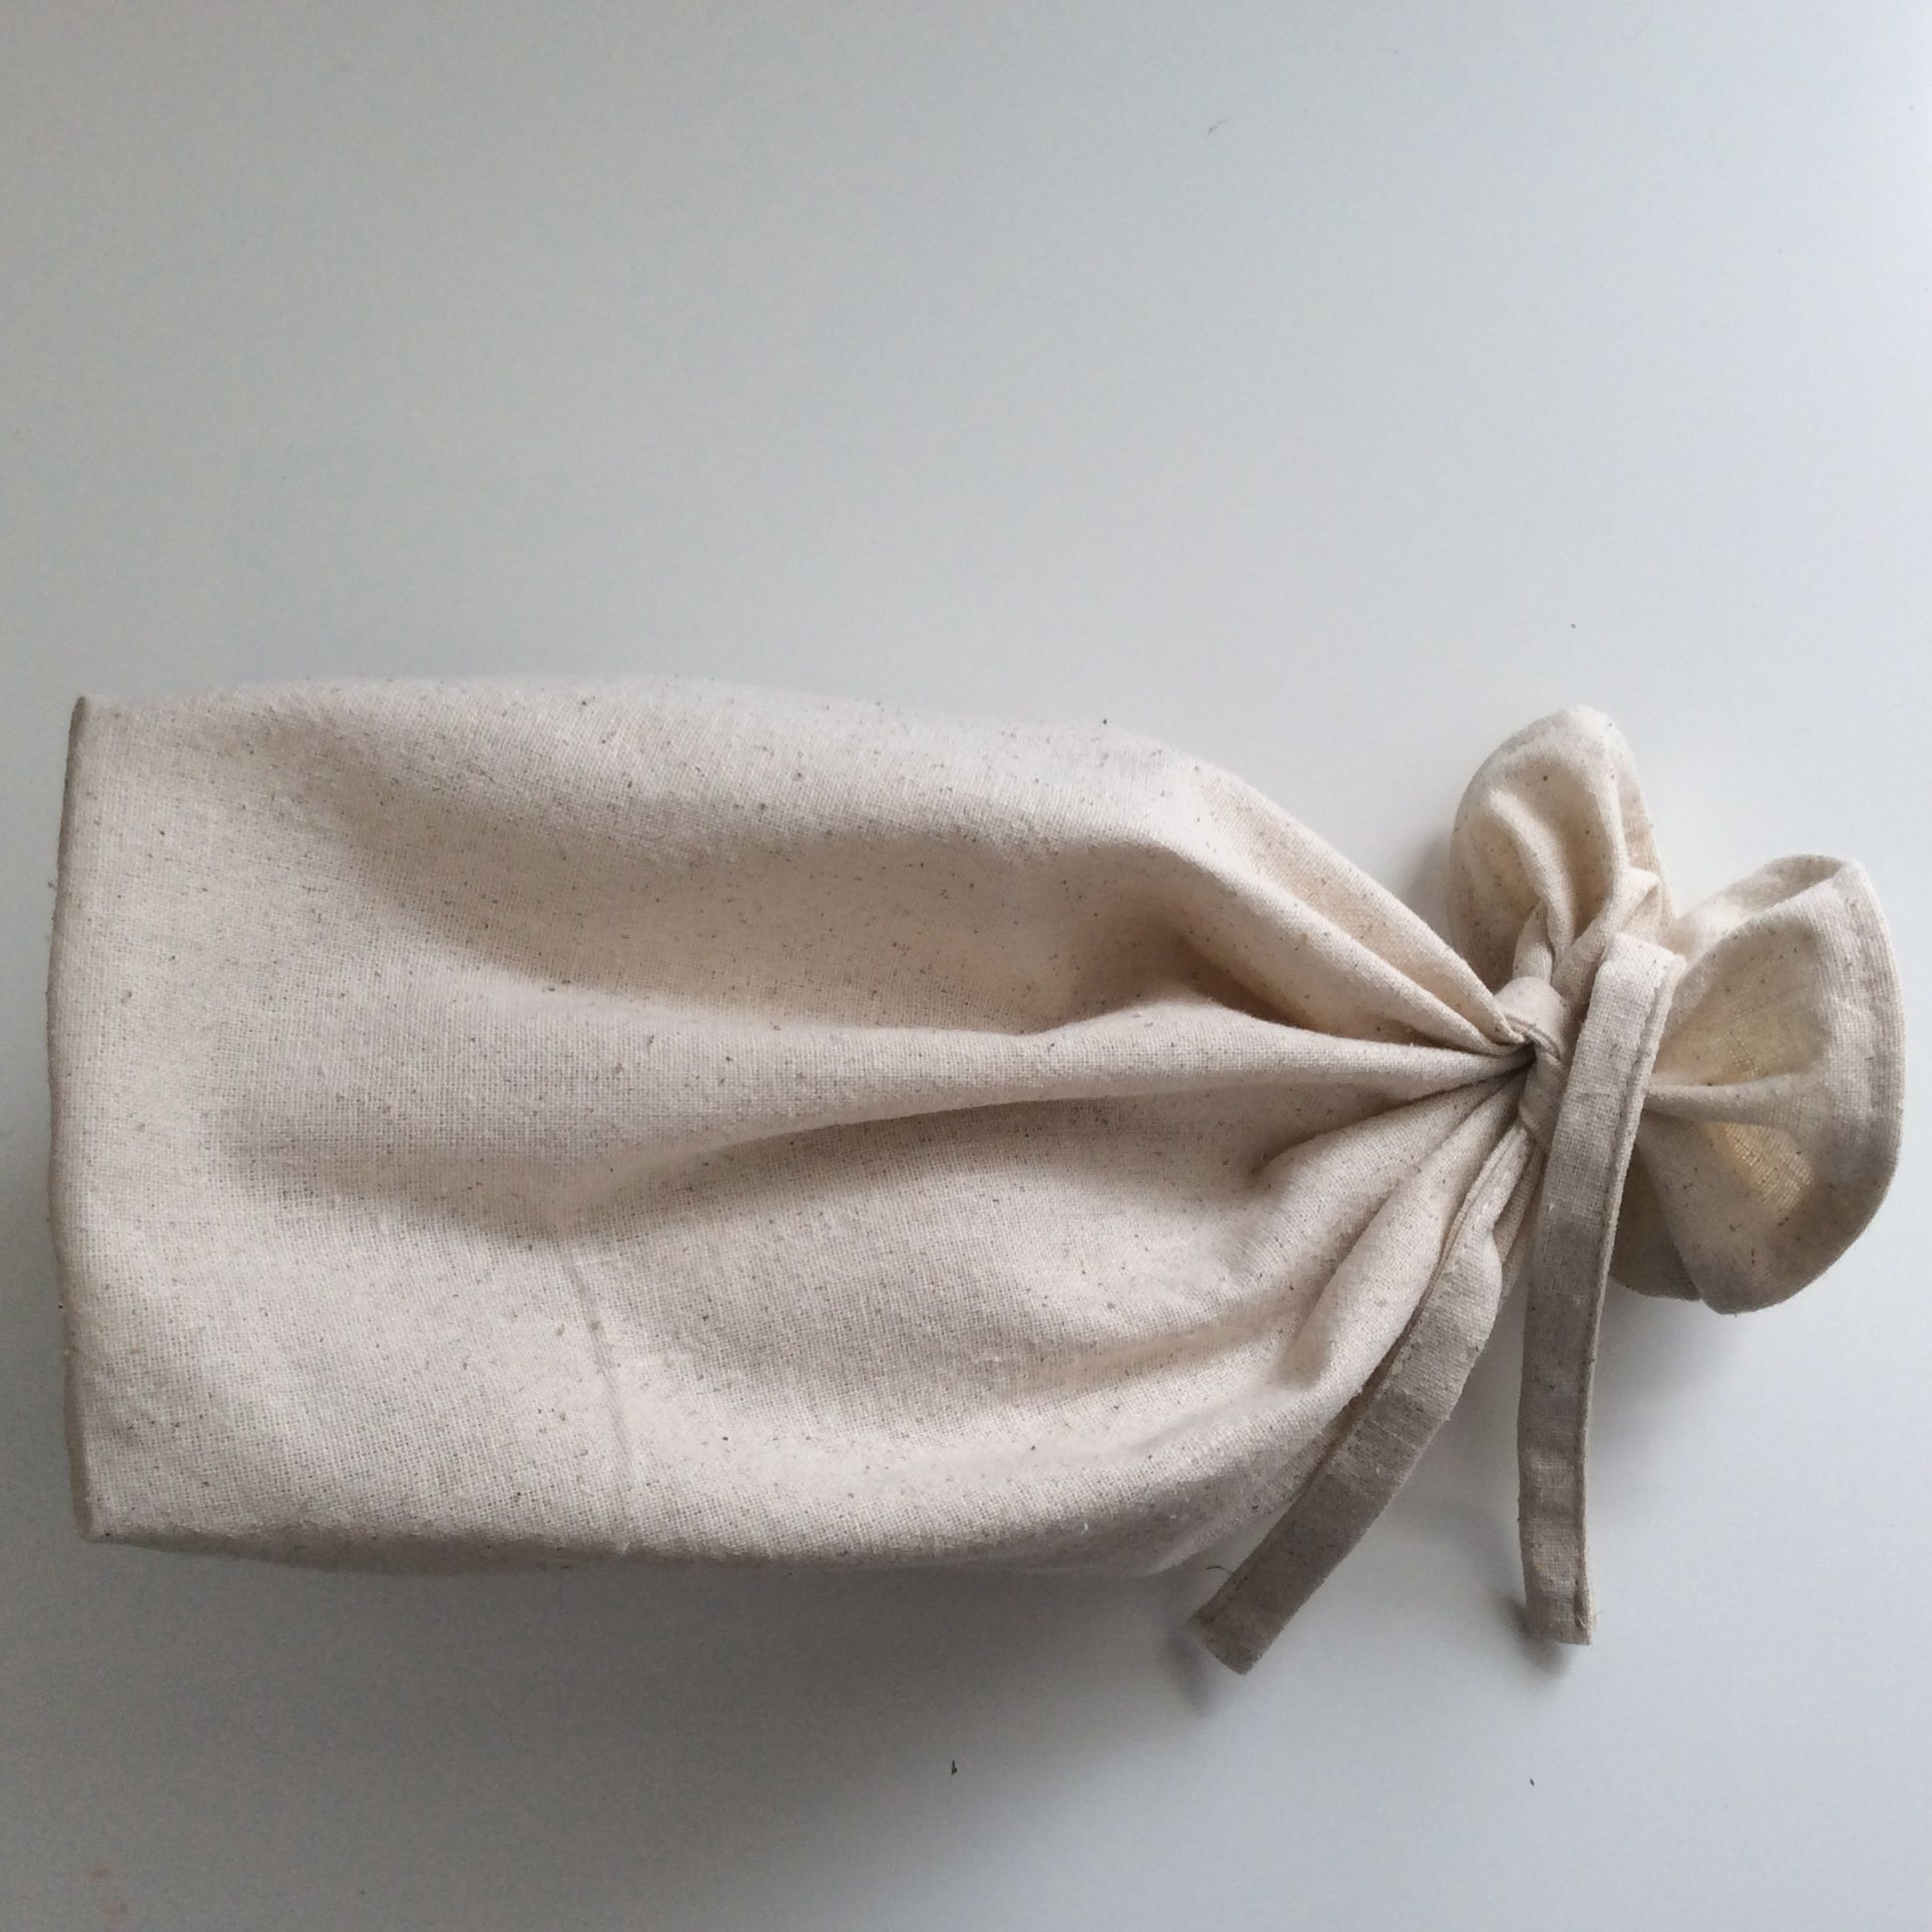 100% unbleached cotton bread bag. Available in various sizes.  https://www.etsy.com/ca/your/shops/scraphilldesigns